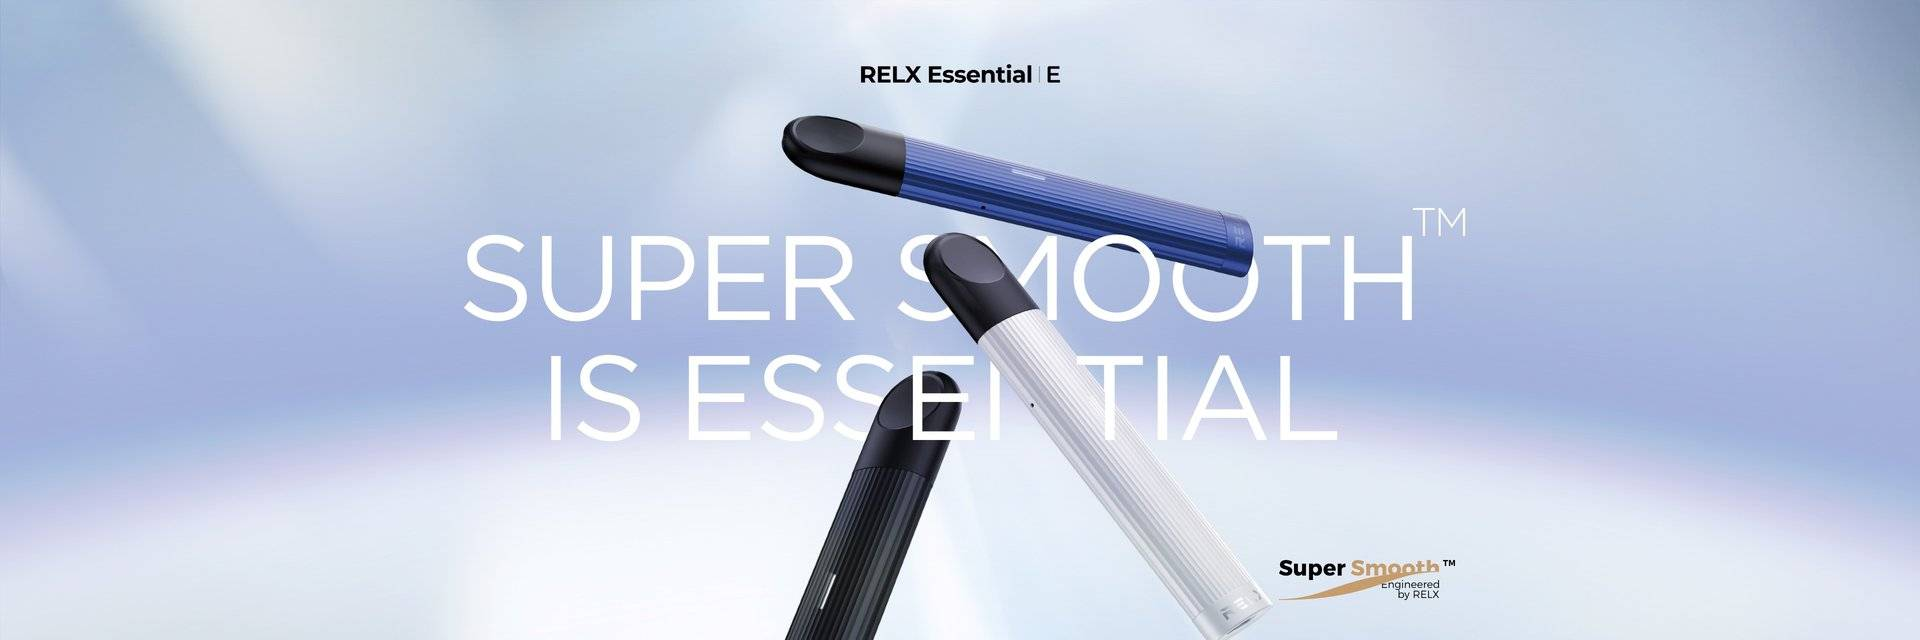 Super Smooth is Essential Device